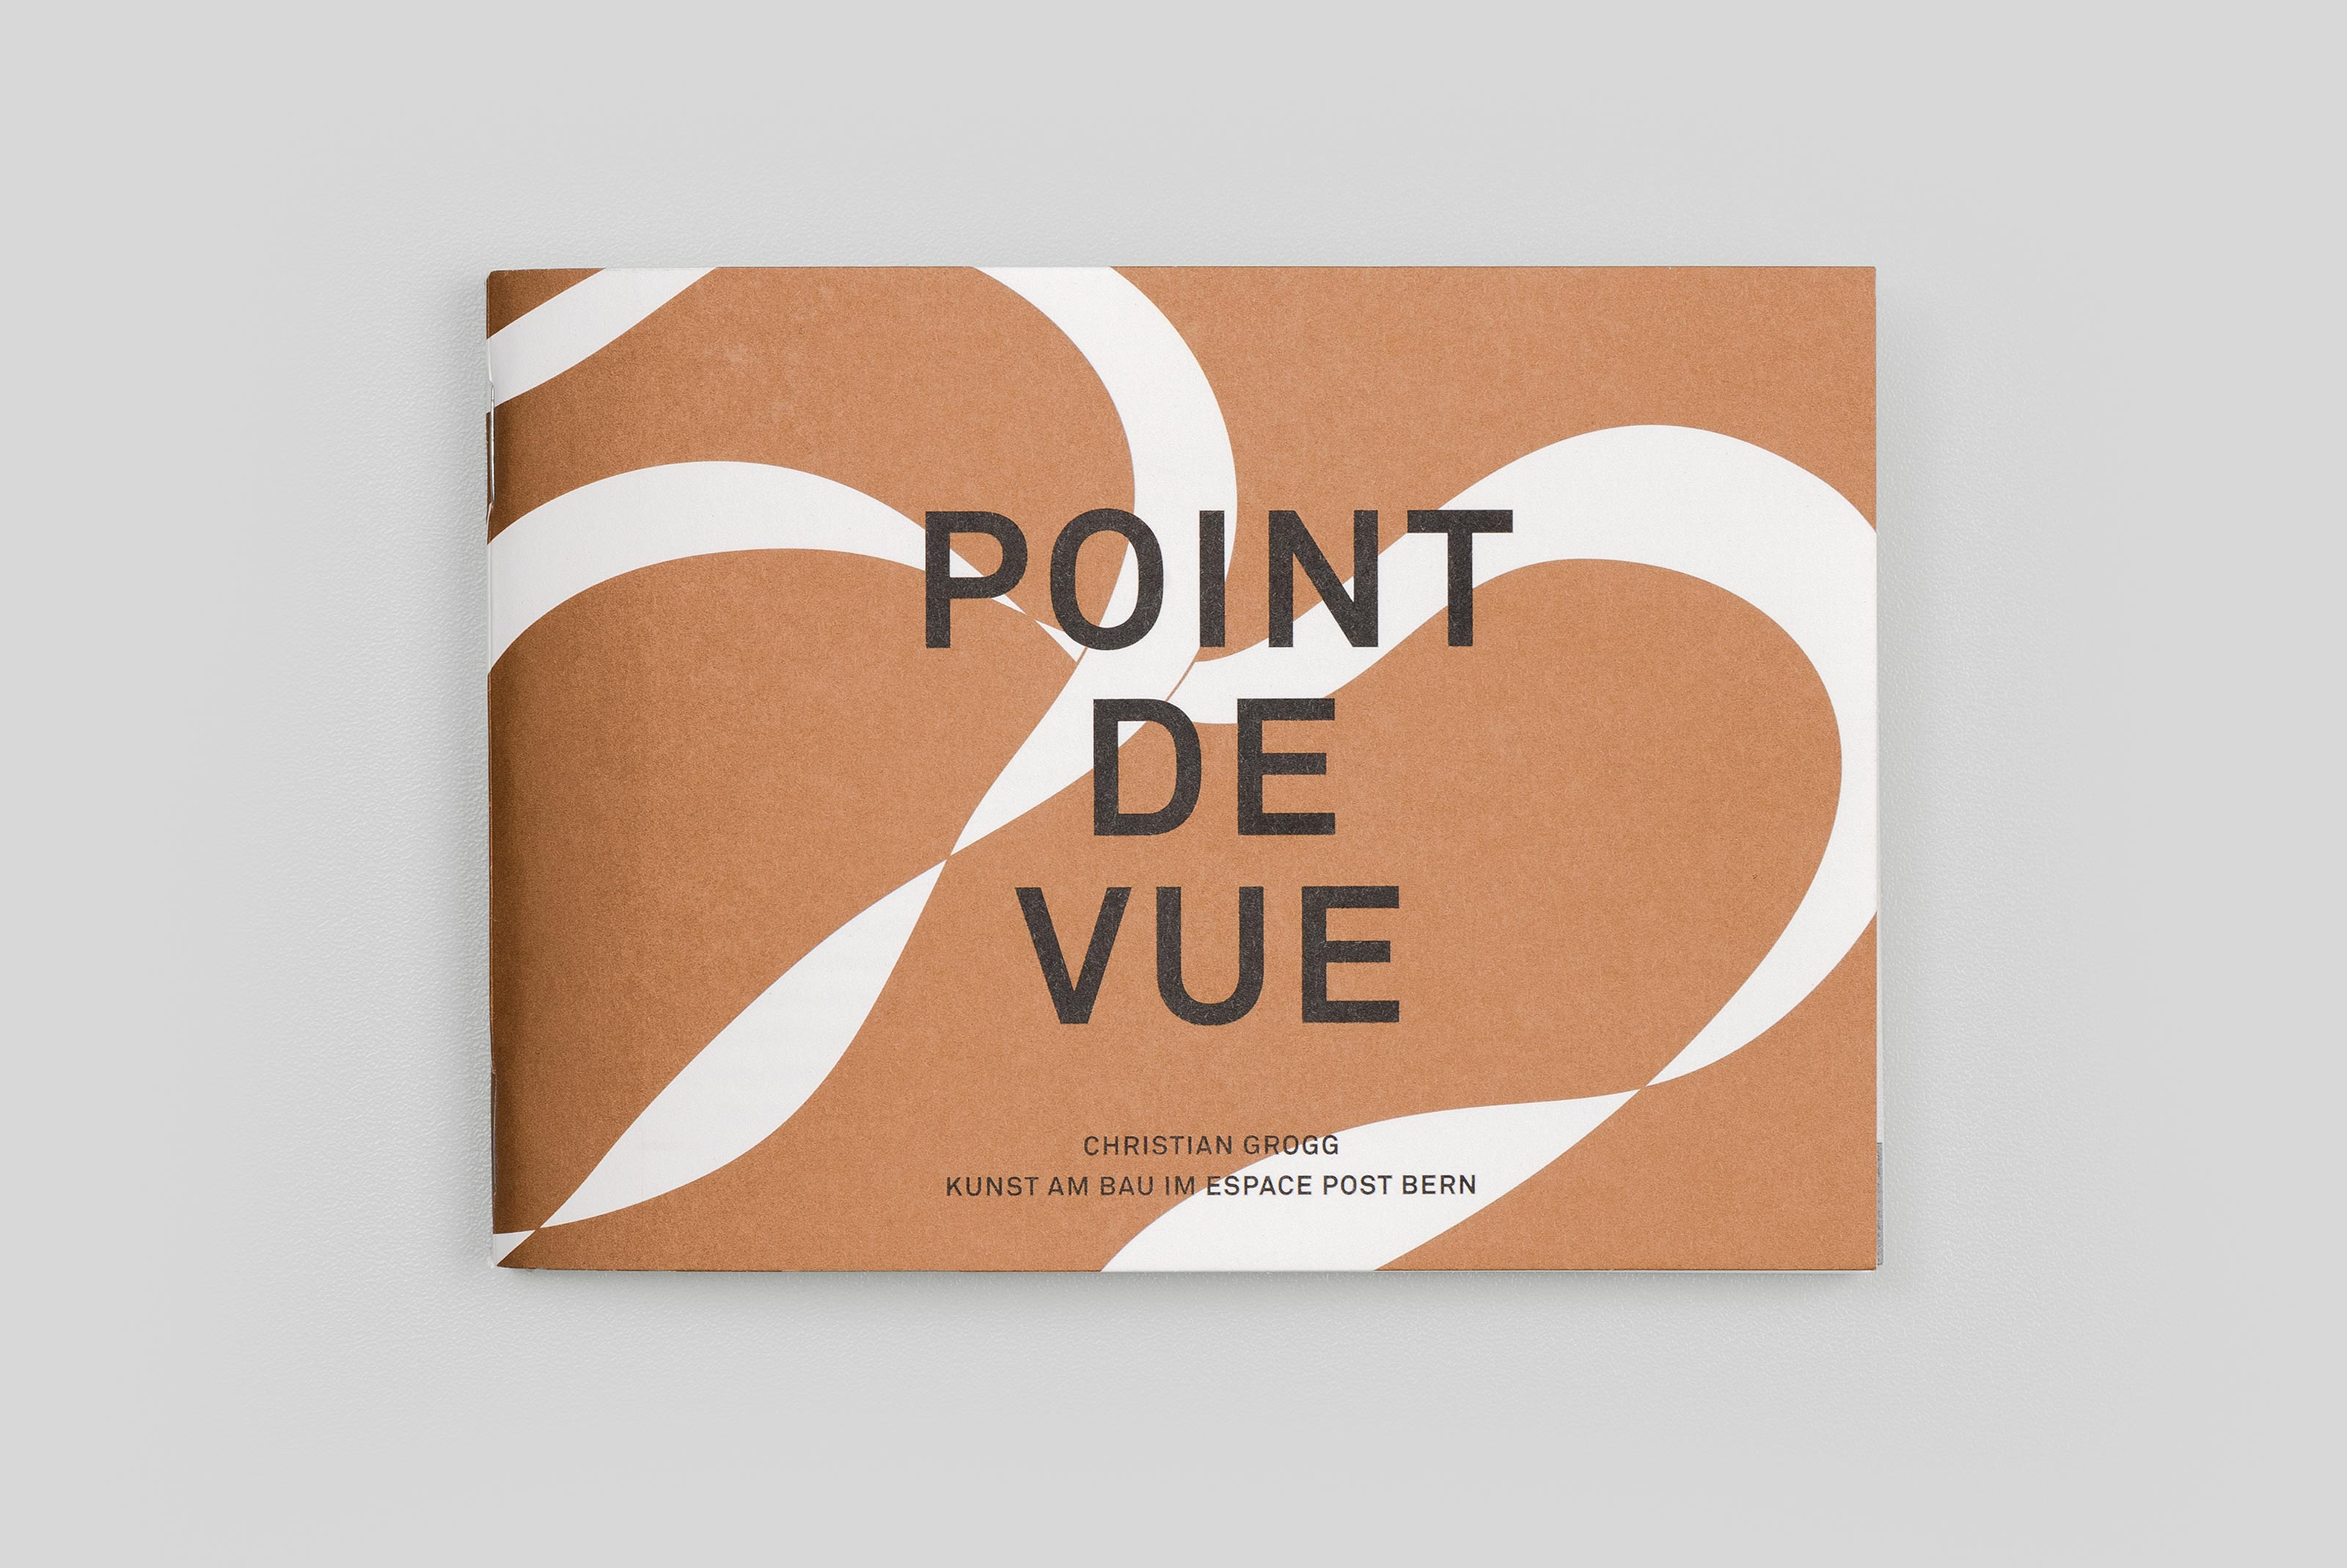 Kunstkommission der Schweizerischen Post, Christian Grogg – Point de Vue, cover ©Atelier Pol × Barbara Hess